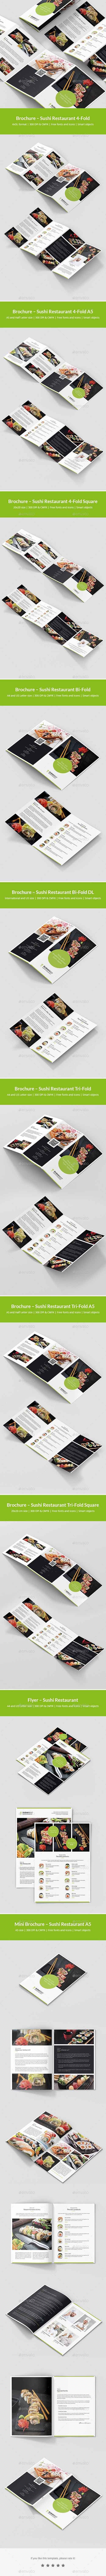 Sushi Restaurant – Brochures Bundle Print Templates 10 in 1 21336721